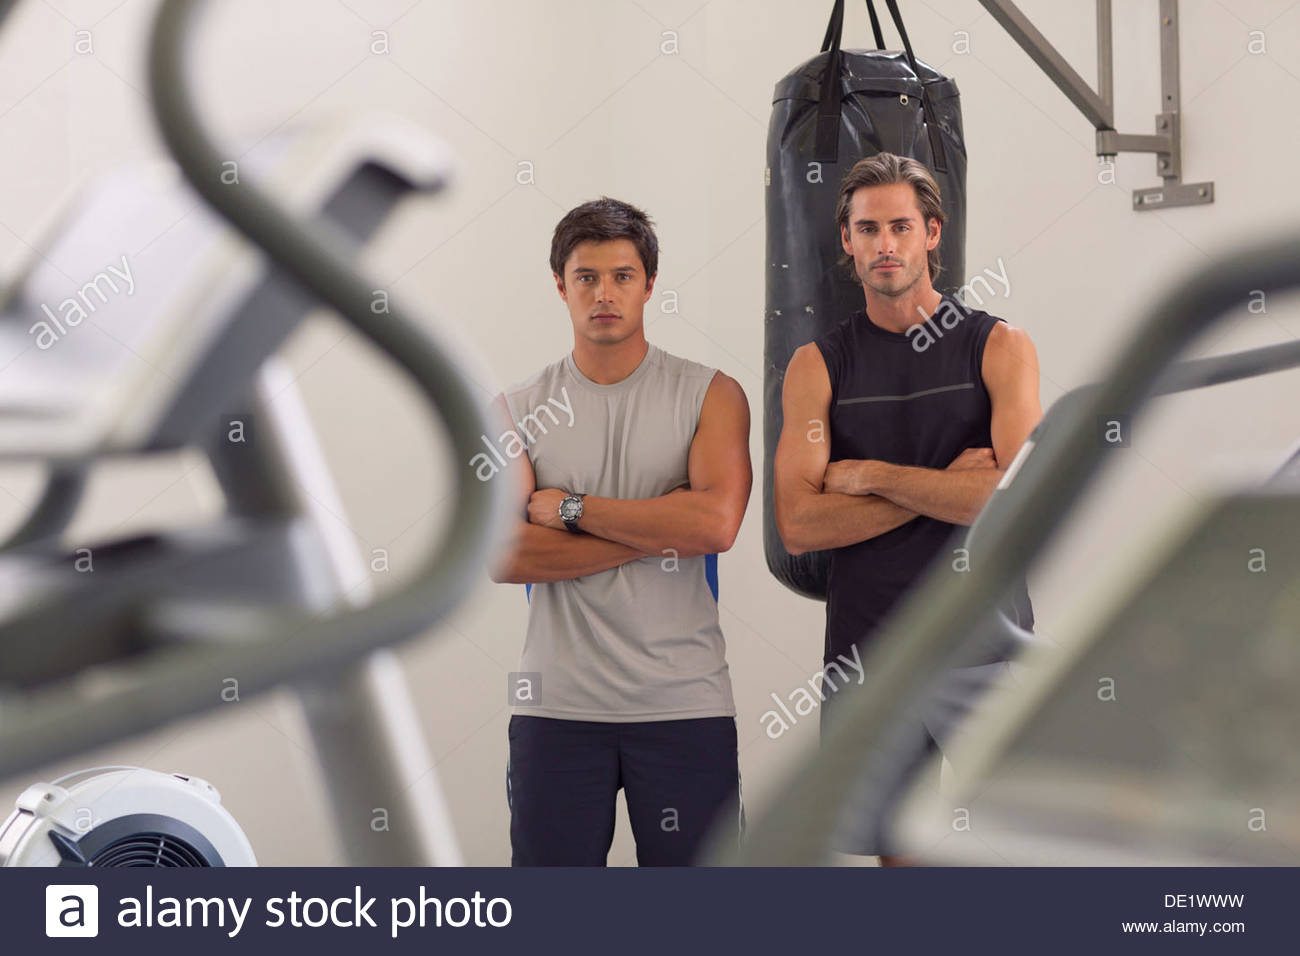 Portrait of smiling men with arms crossed in front of punching bag - Stock Image